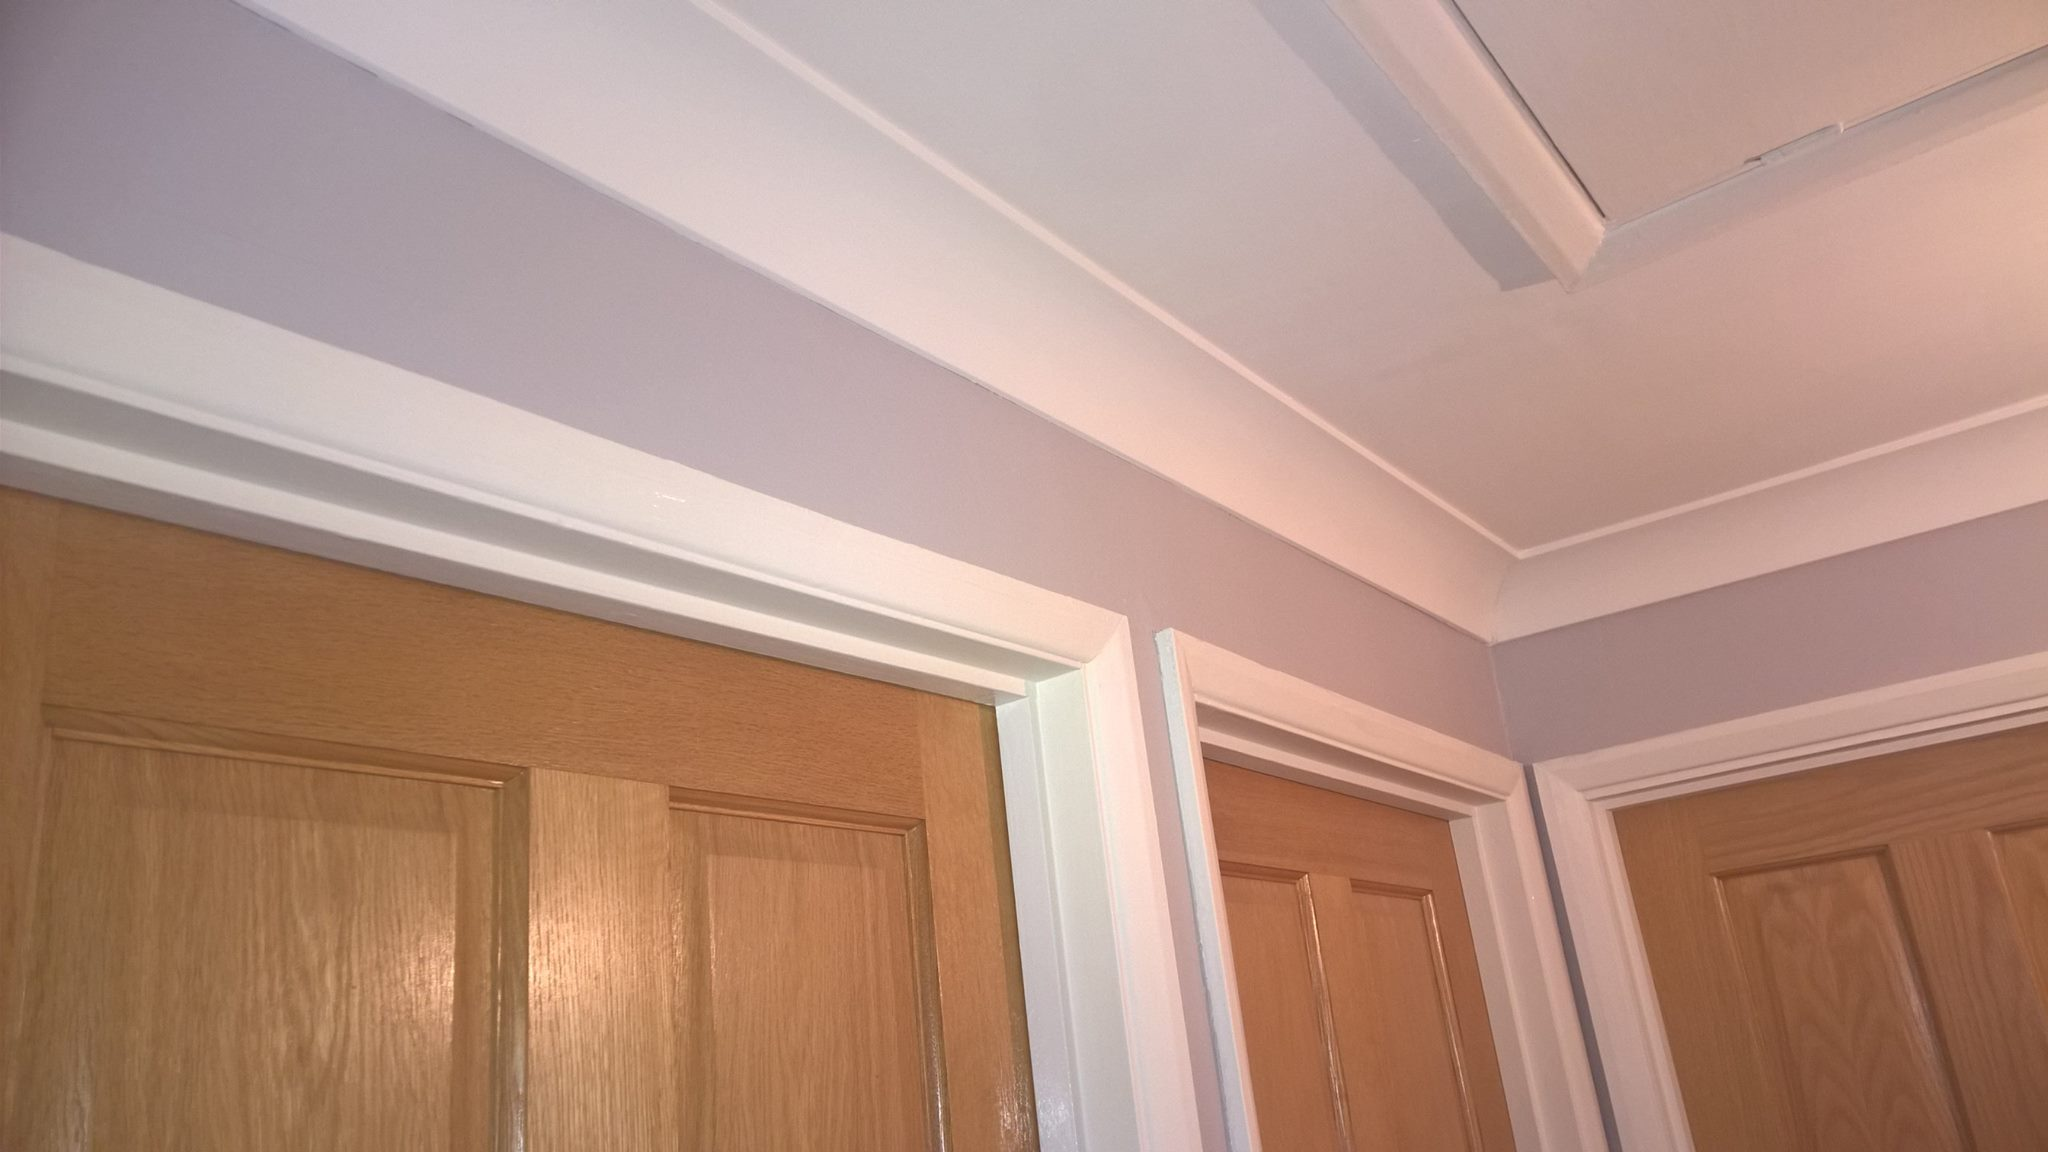 Coving fitted and painted